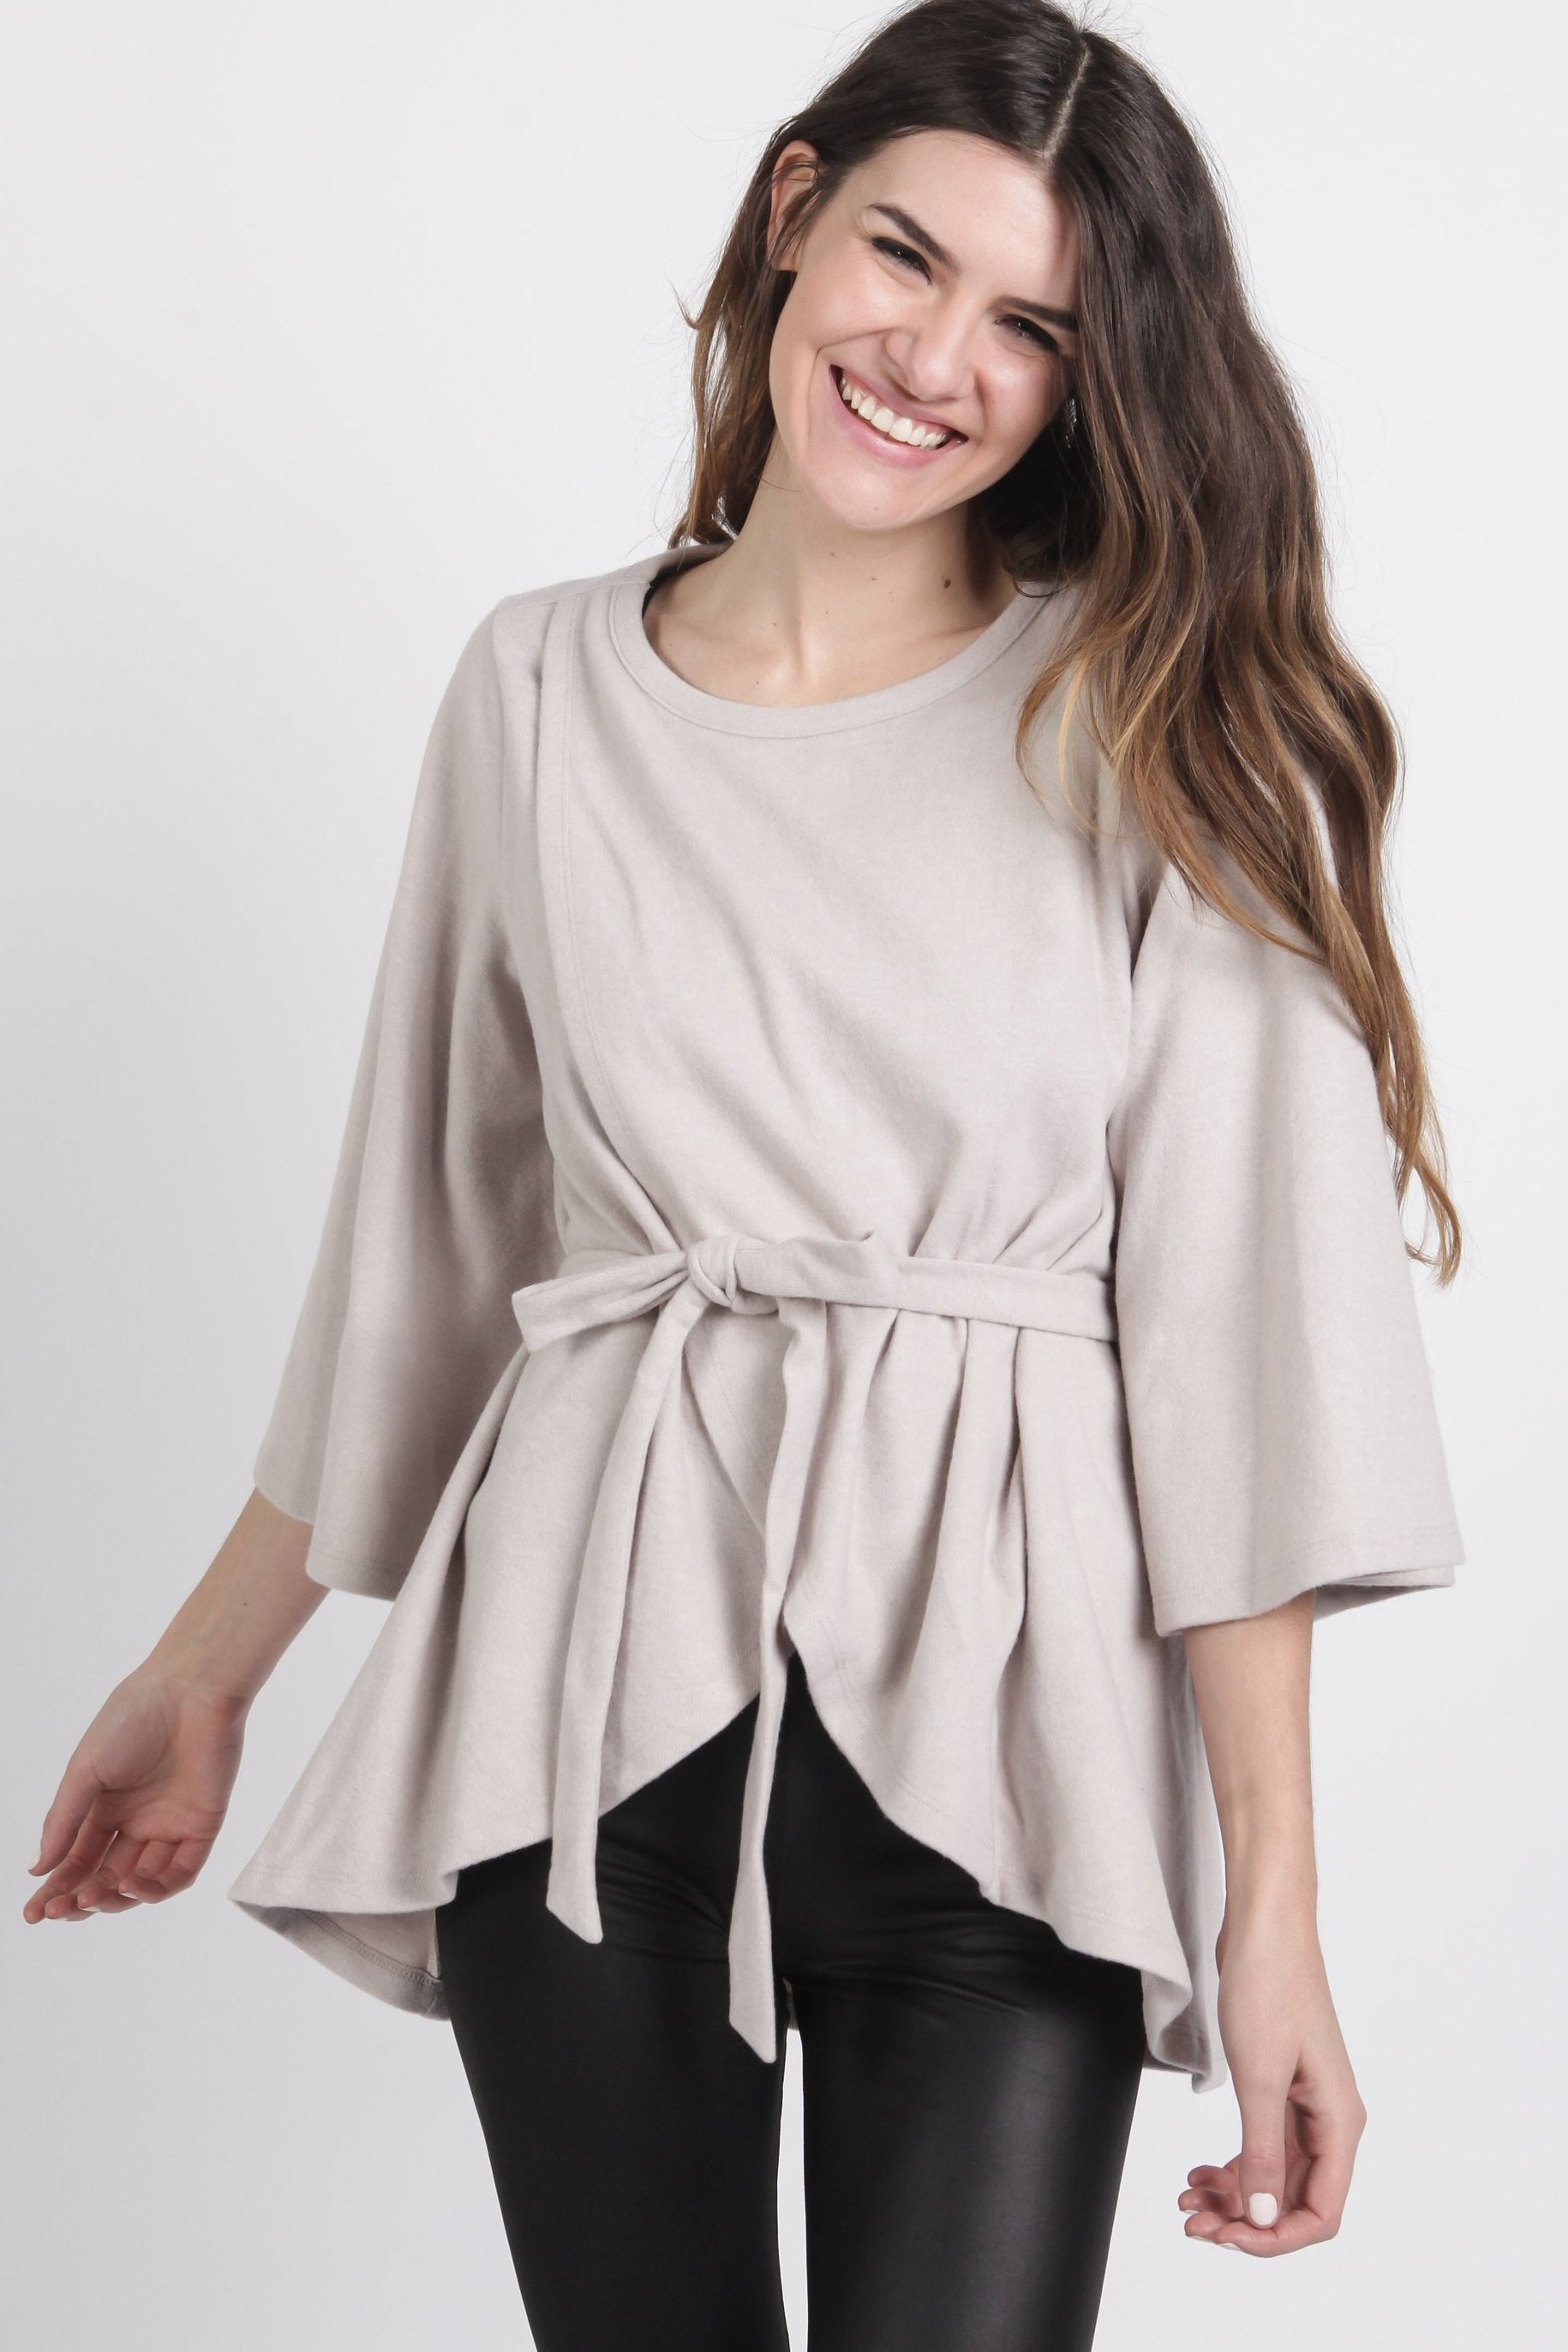 Maren Sweater Cape - Light Grey Cardigan & Sweaters - Vinnie Louise